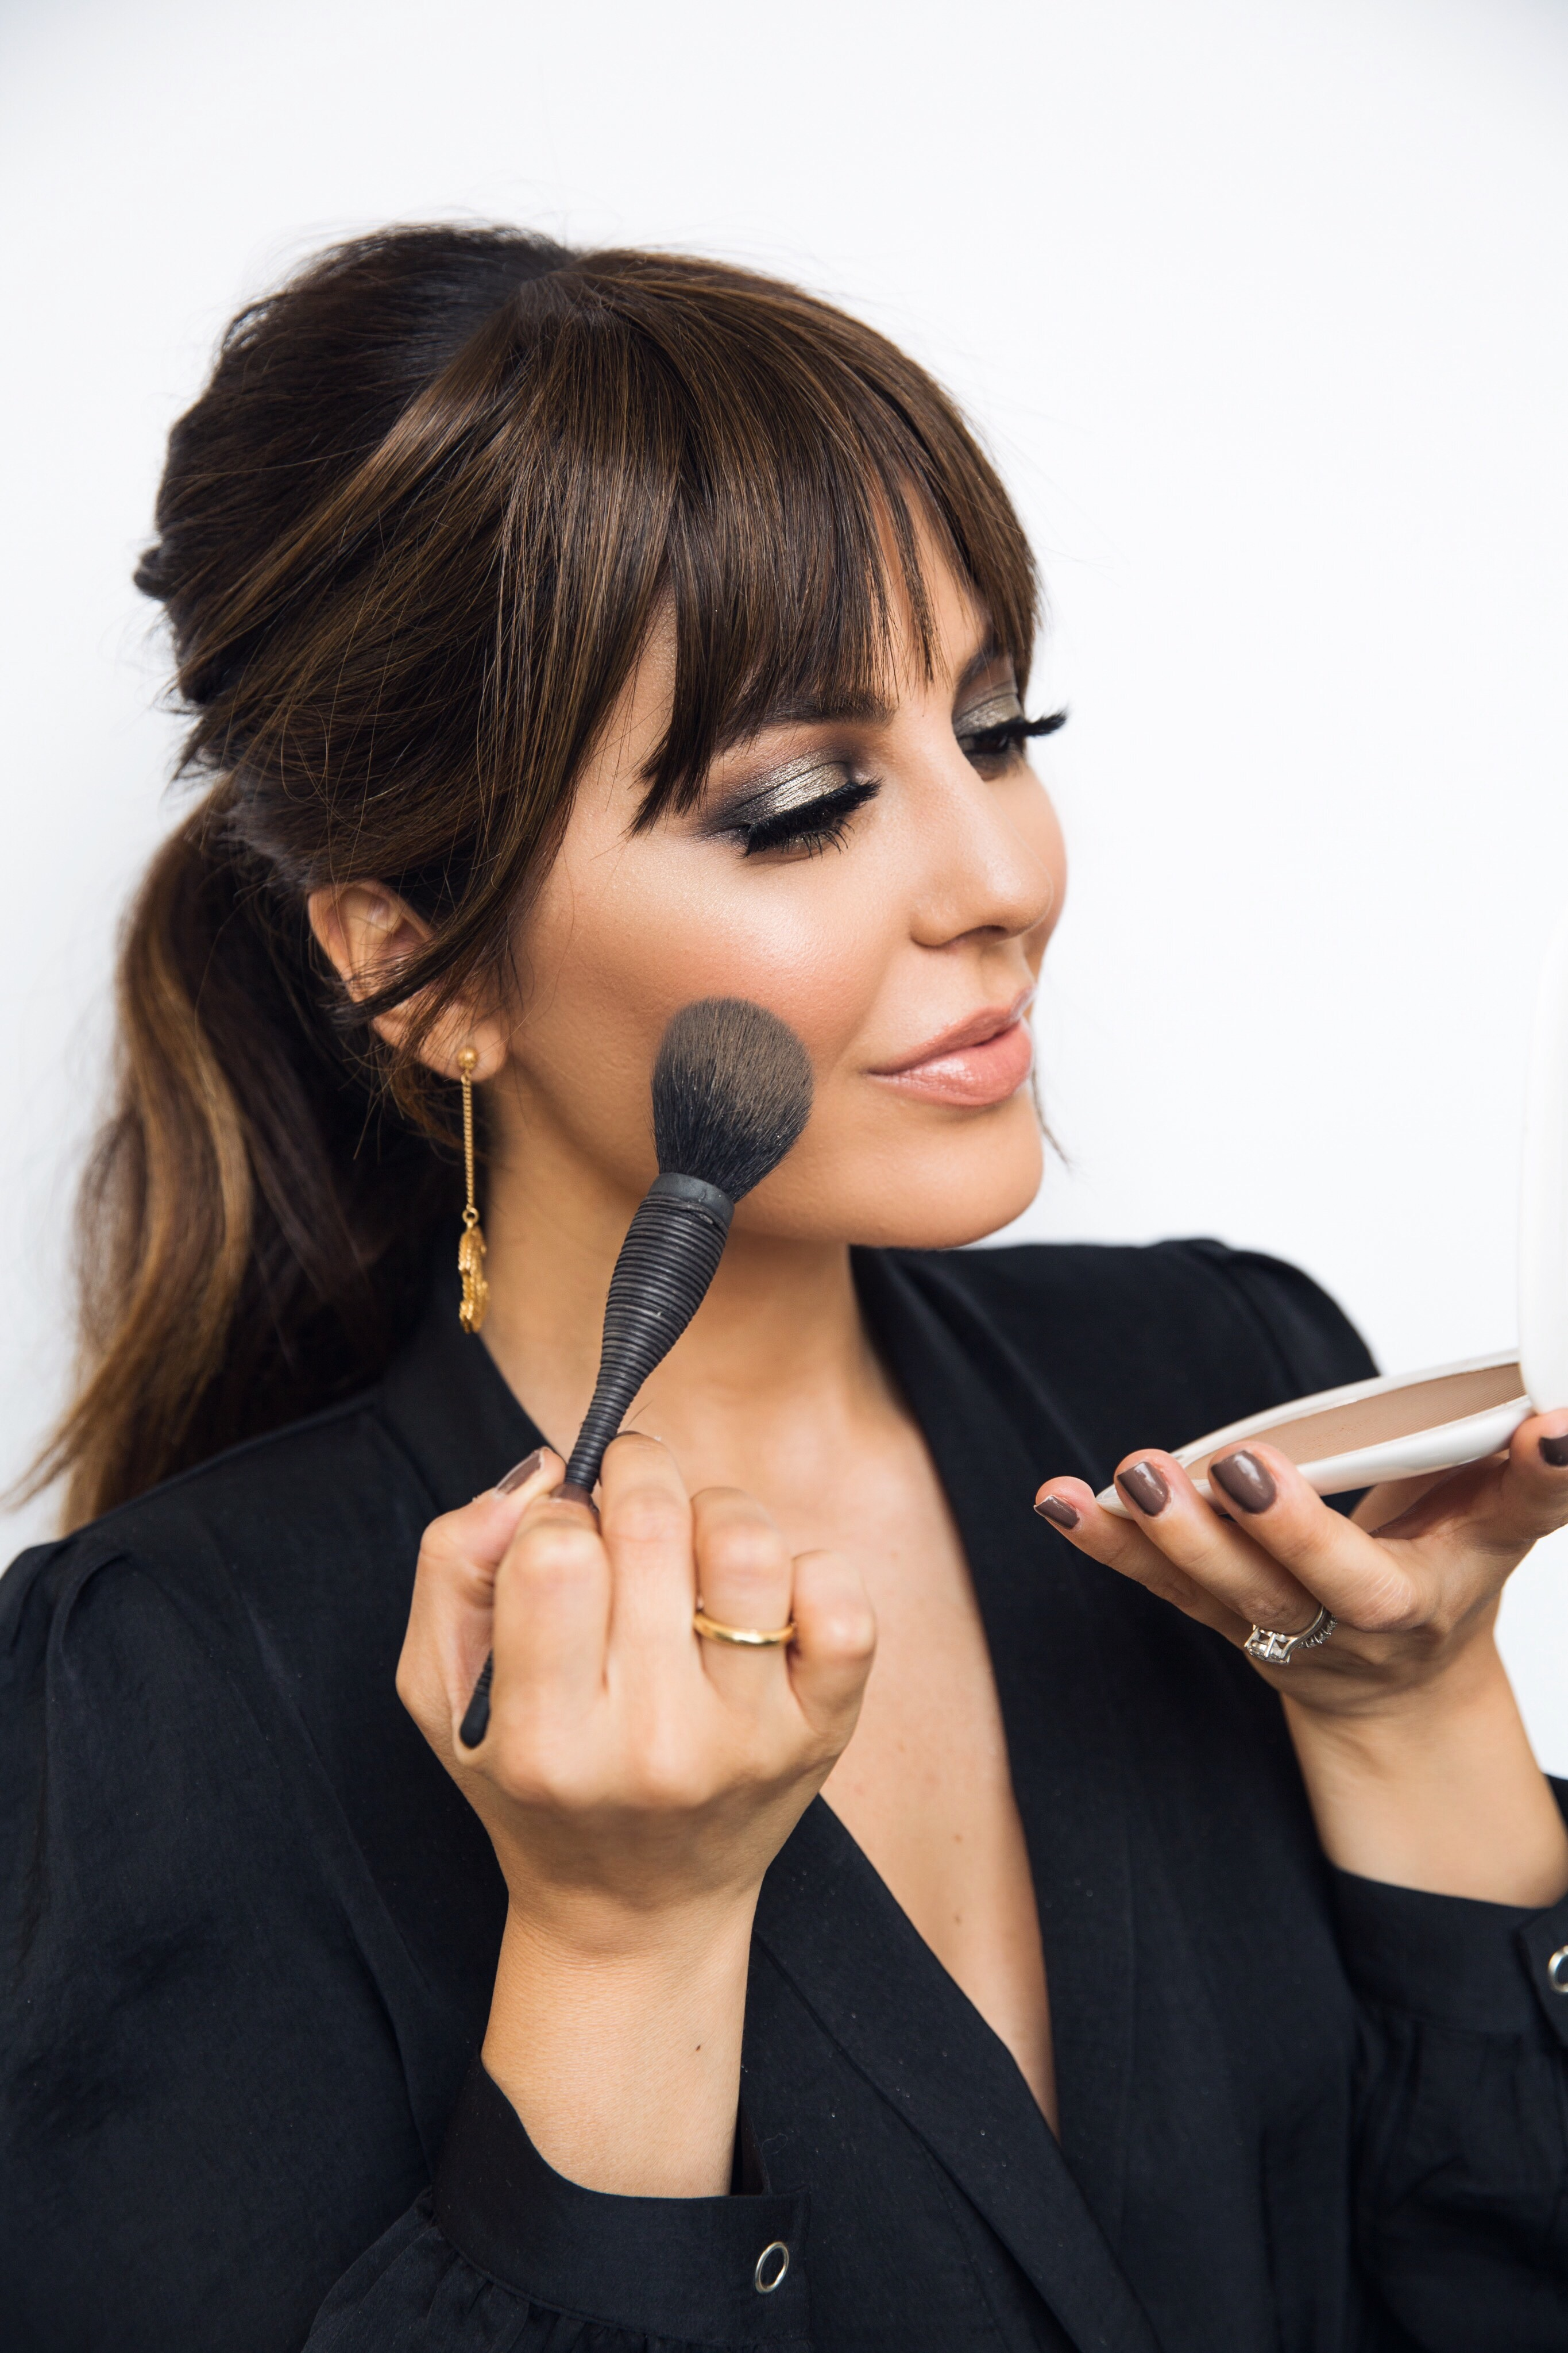 sona selects, the best in beauty. Sona Gasparian uses Marc Jacobs O!Mega Bronzer